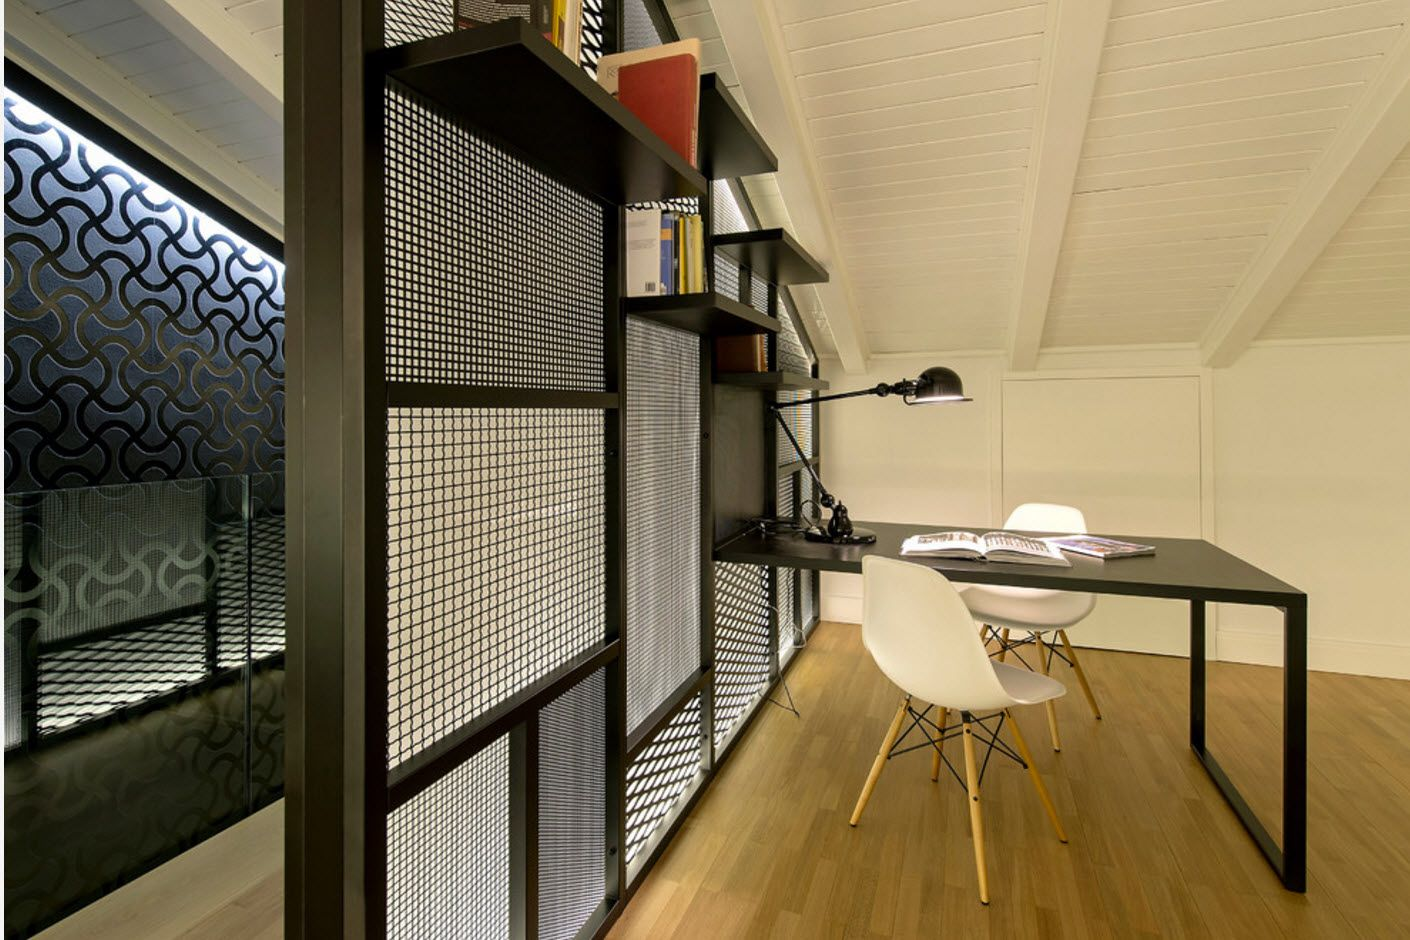 Top 100 Modern Home Office Design Trends 2017. Zoned working place with slanted ceiling